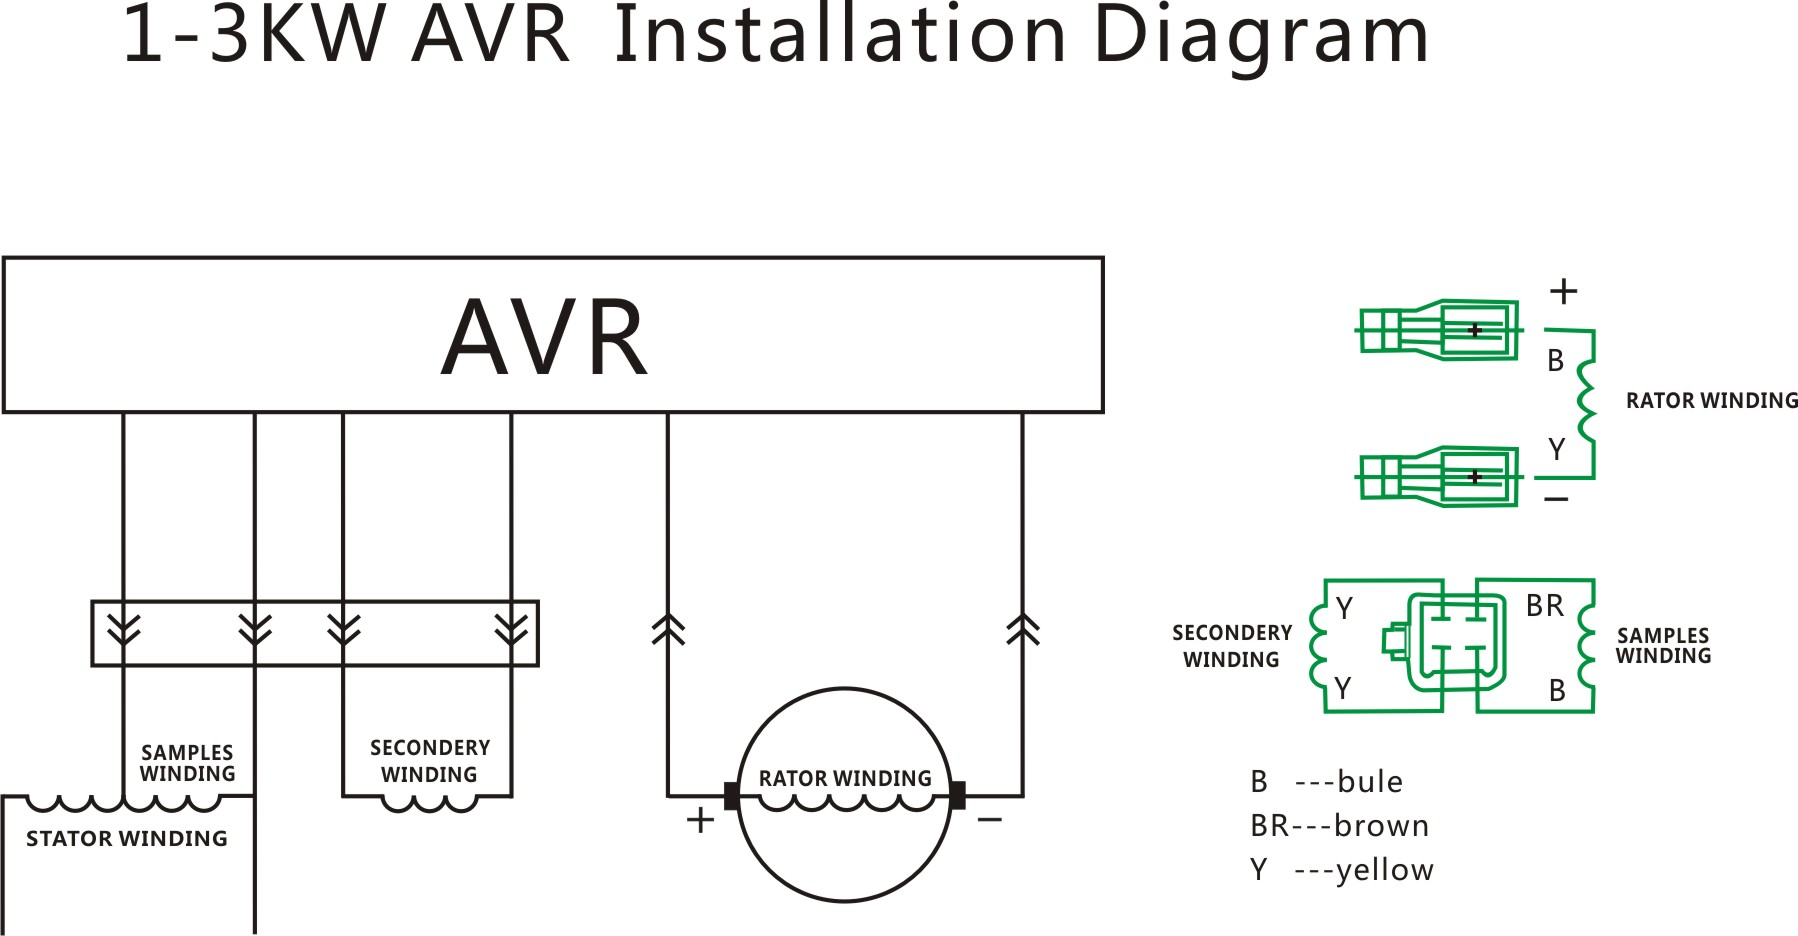 Generator Avr Wiring Diagram Libraries Schematic Diagramsgenerator Third Level